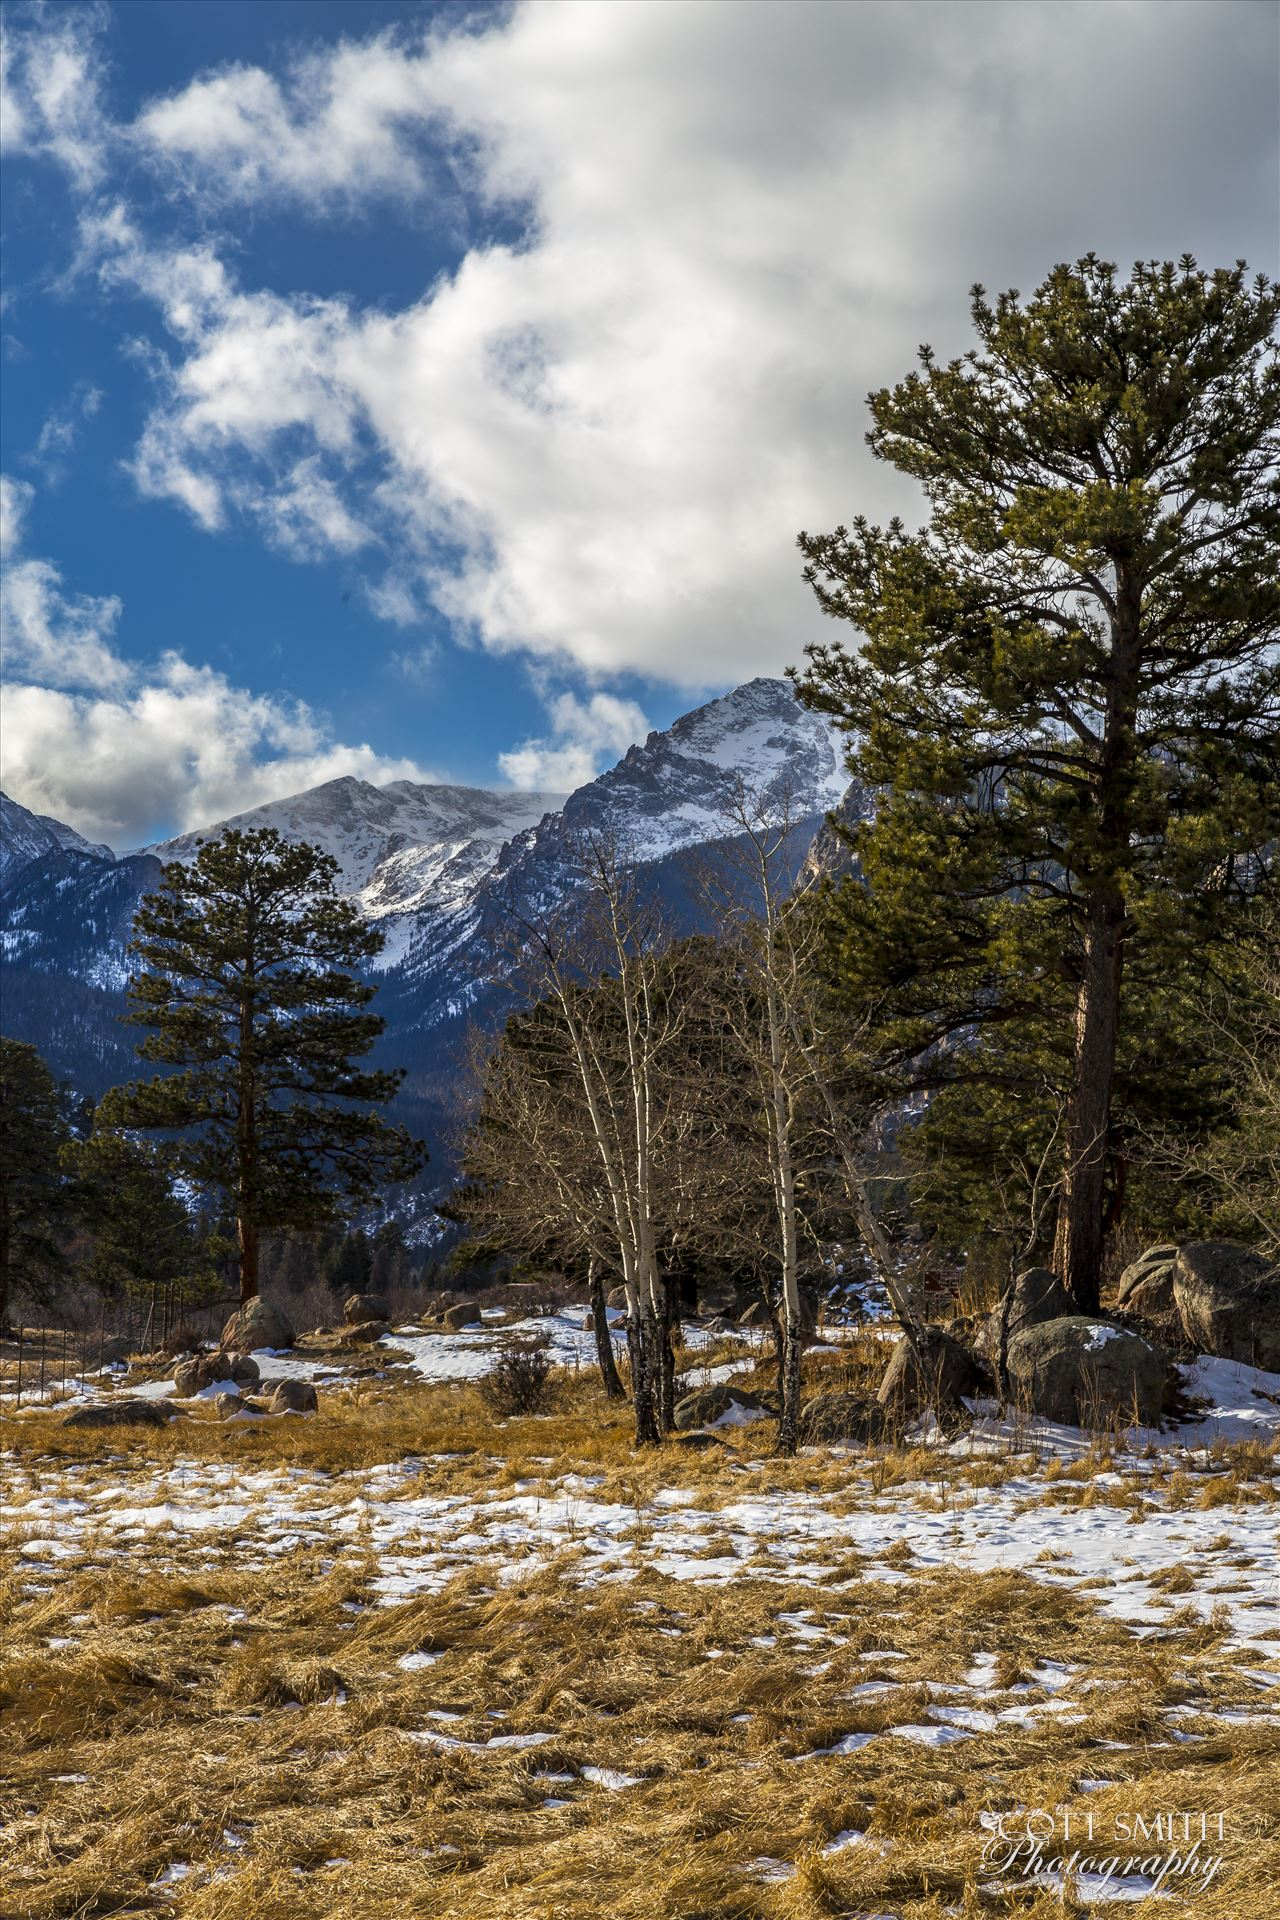 Winter at Bear Lake Road - Winter's begun, taken just off Bear Lake Road in the Rocky Mountain National Park. by D Scott Smith